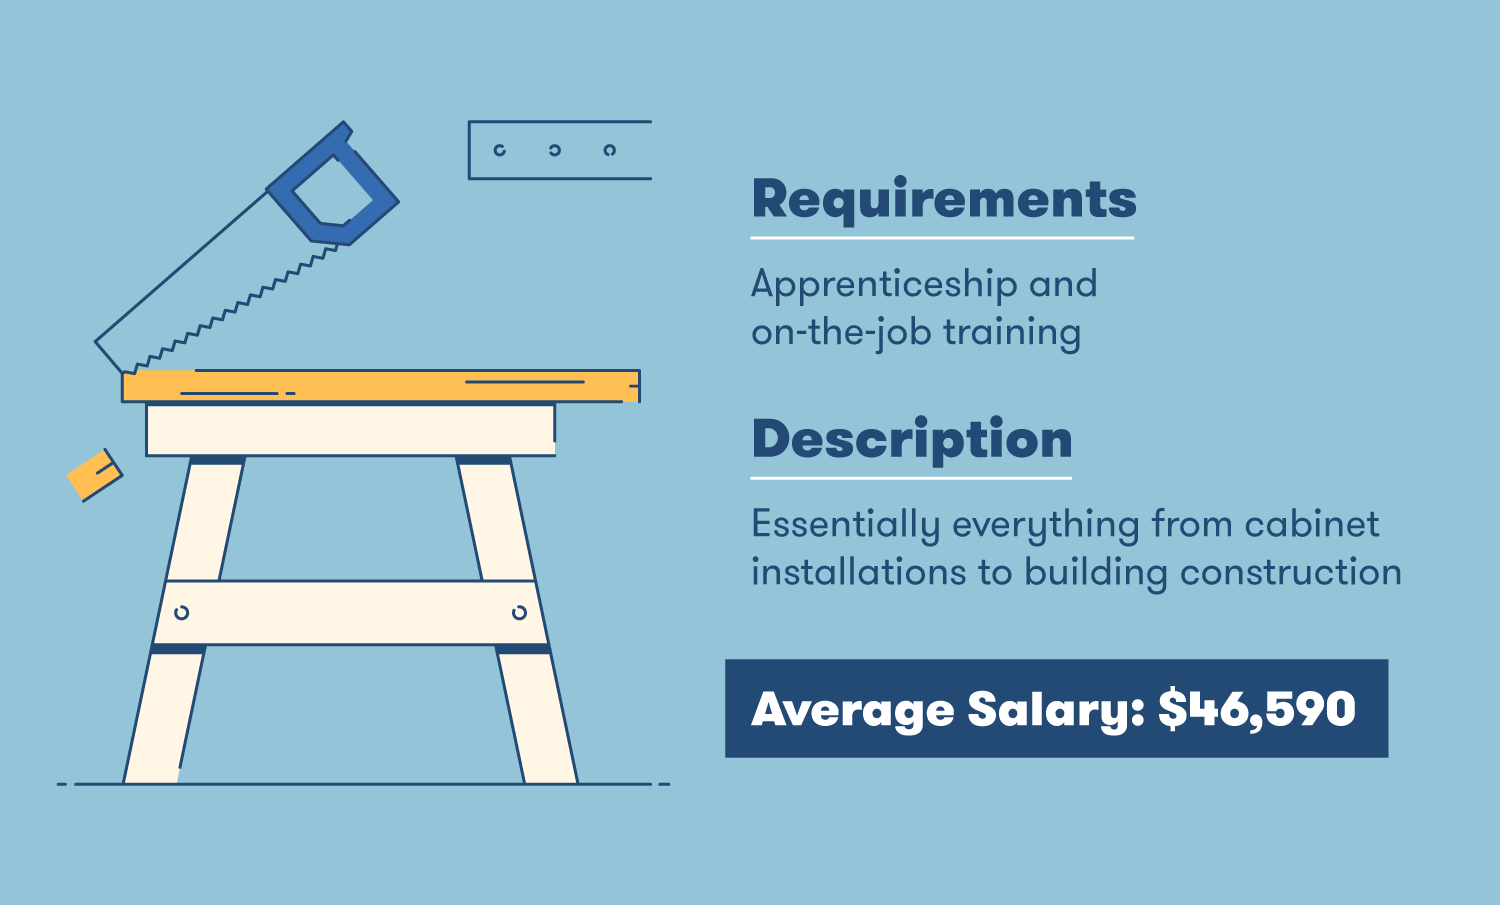 carpenter requirements description and salary